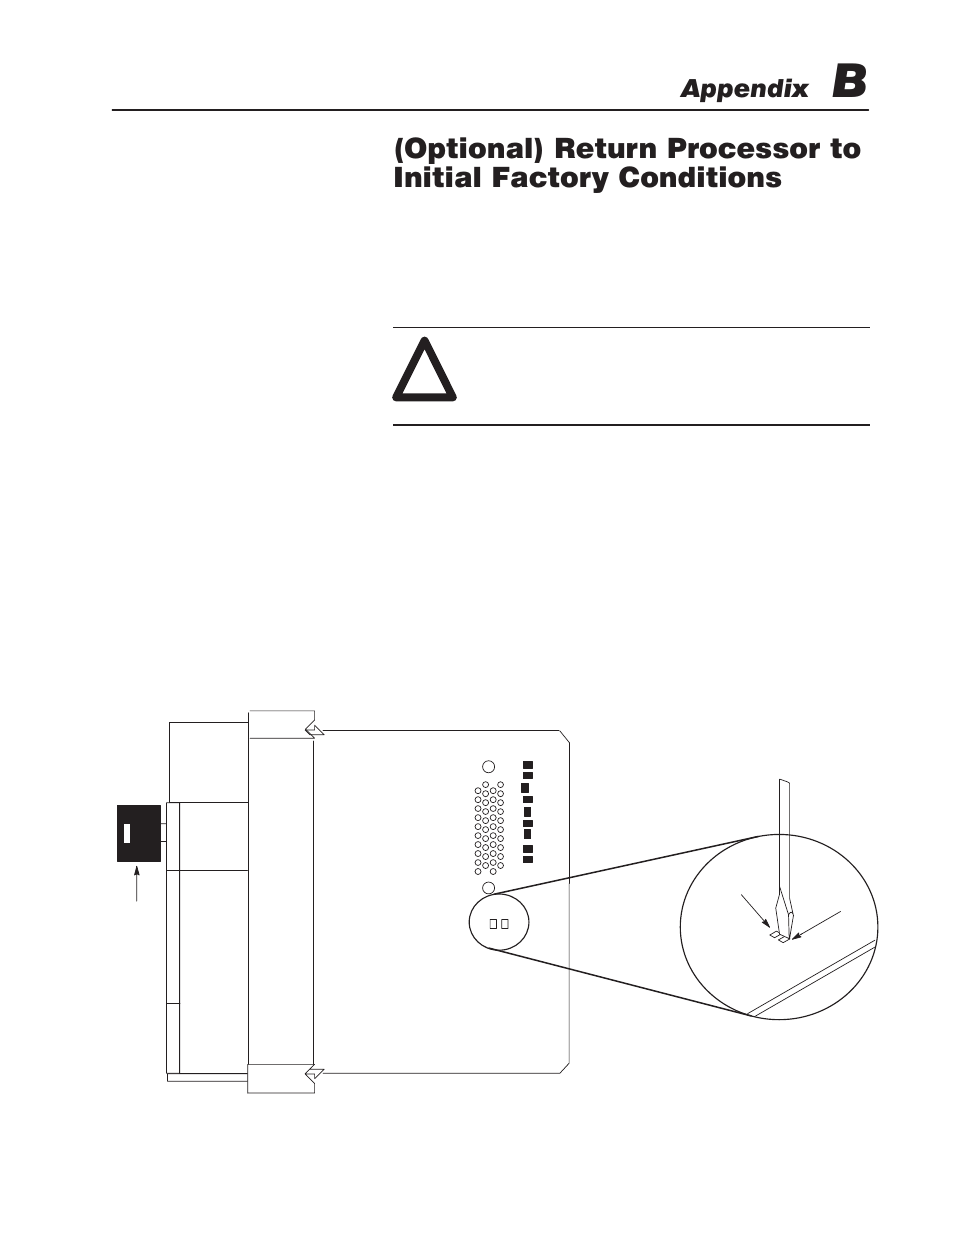 hight resolution of appendix rockwell automation 1747 l55x d174710 4 slc 500 ethernet user manual page 67 70